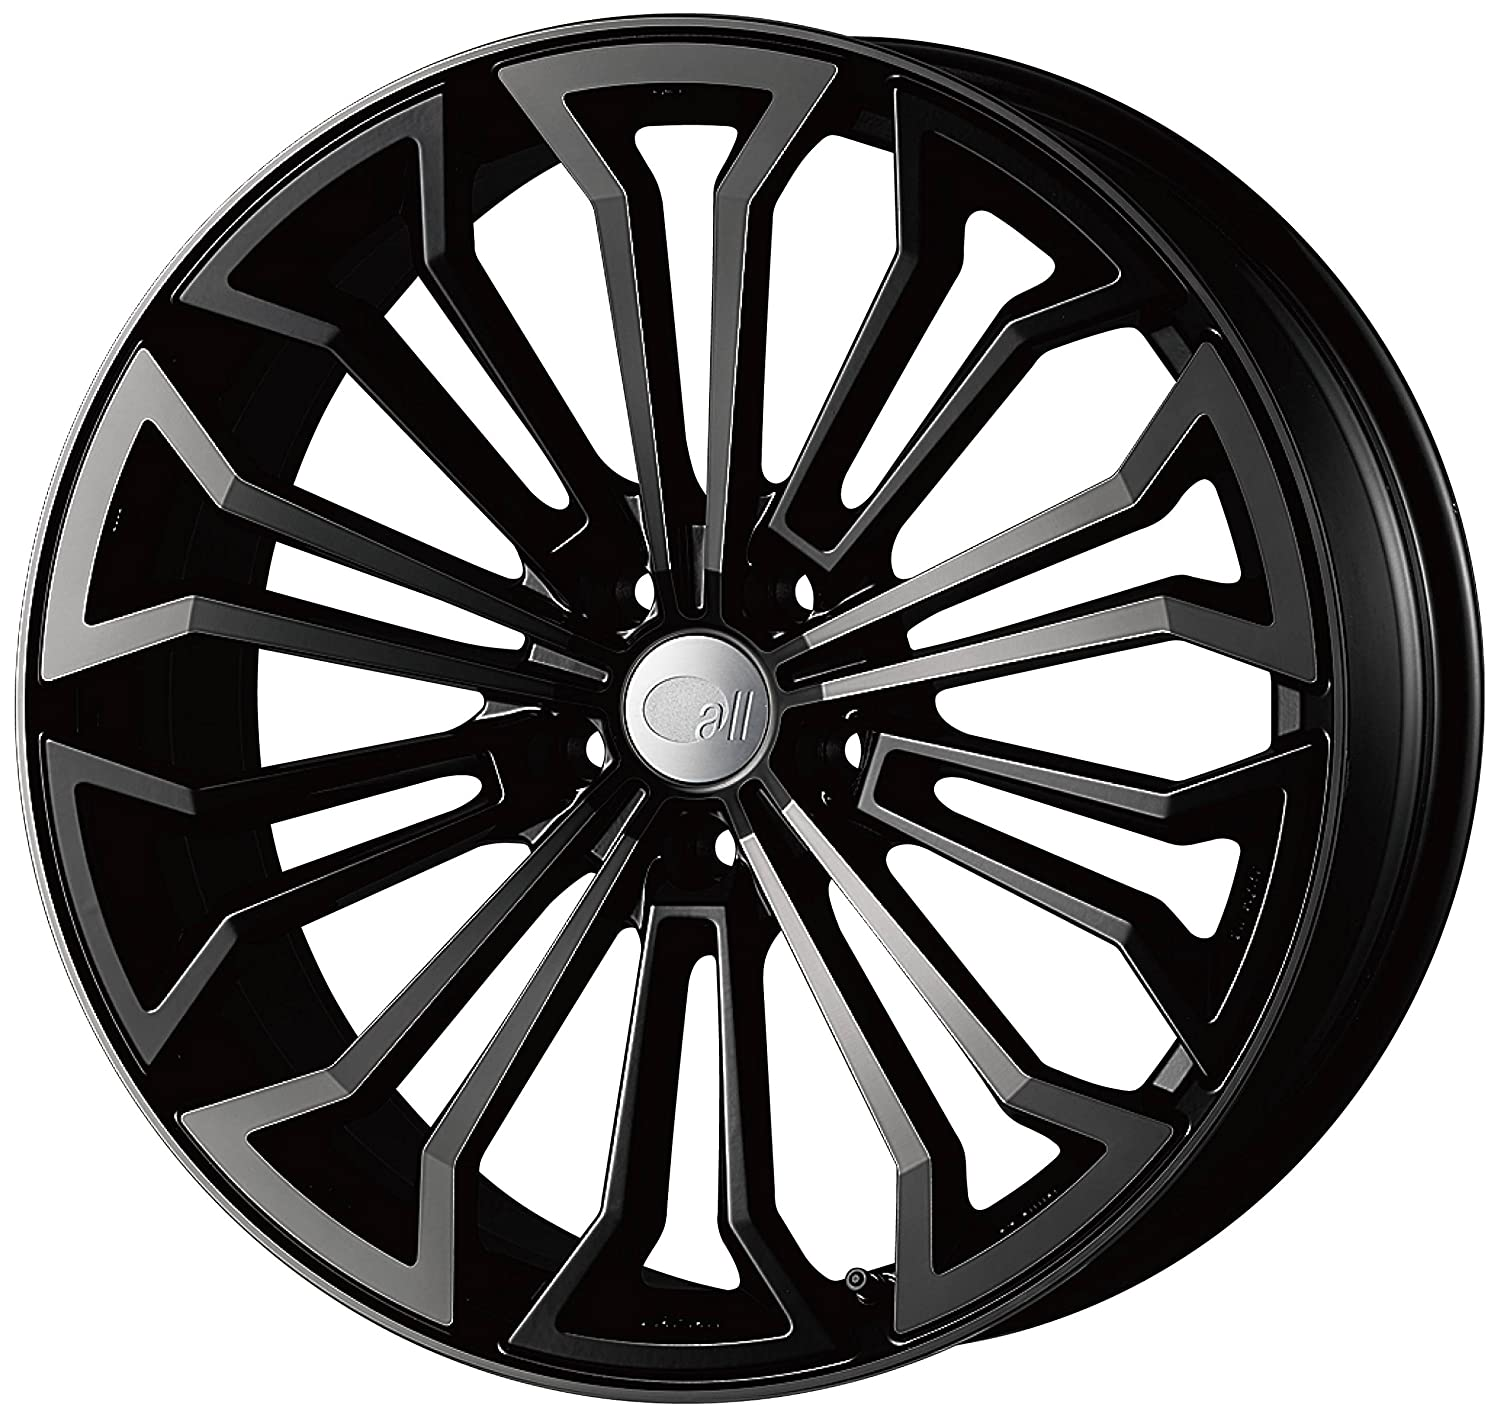 エンケイ アルミホイール all eight 20 x 8.5J +42 5H 107.95 Black Clear AL8-2085-42-5E-B/B B06W54T2TK